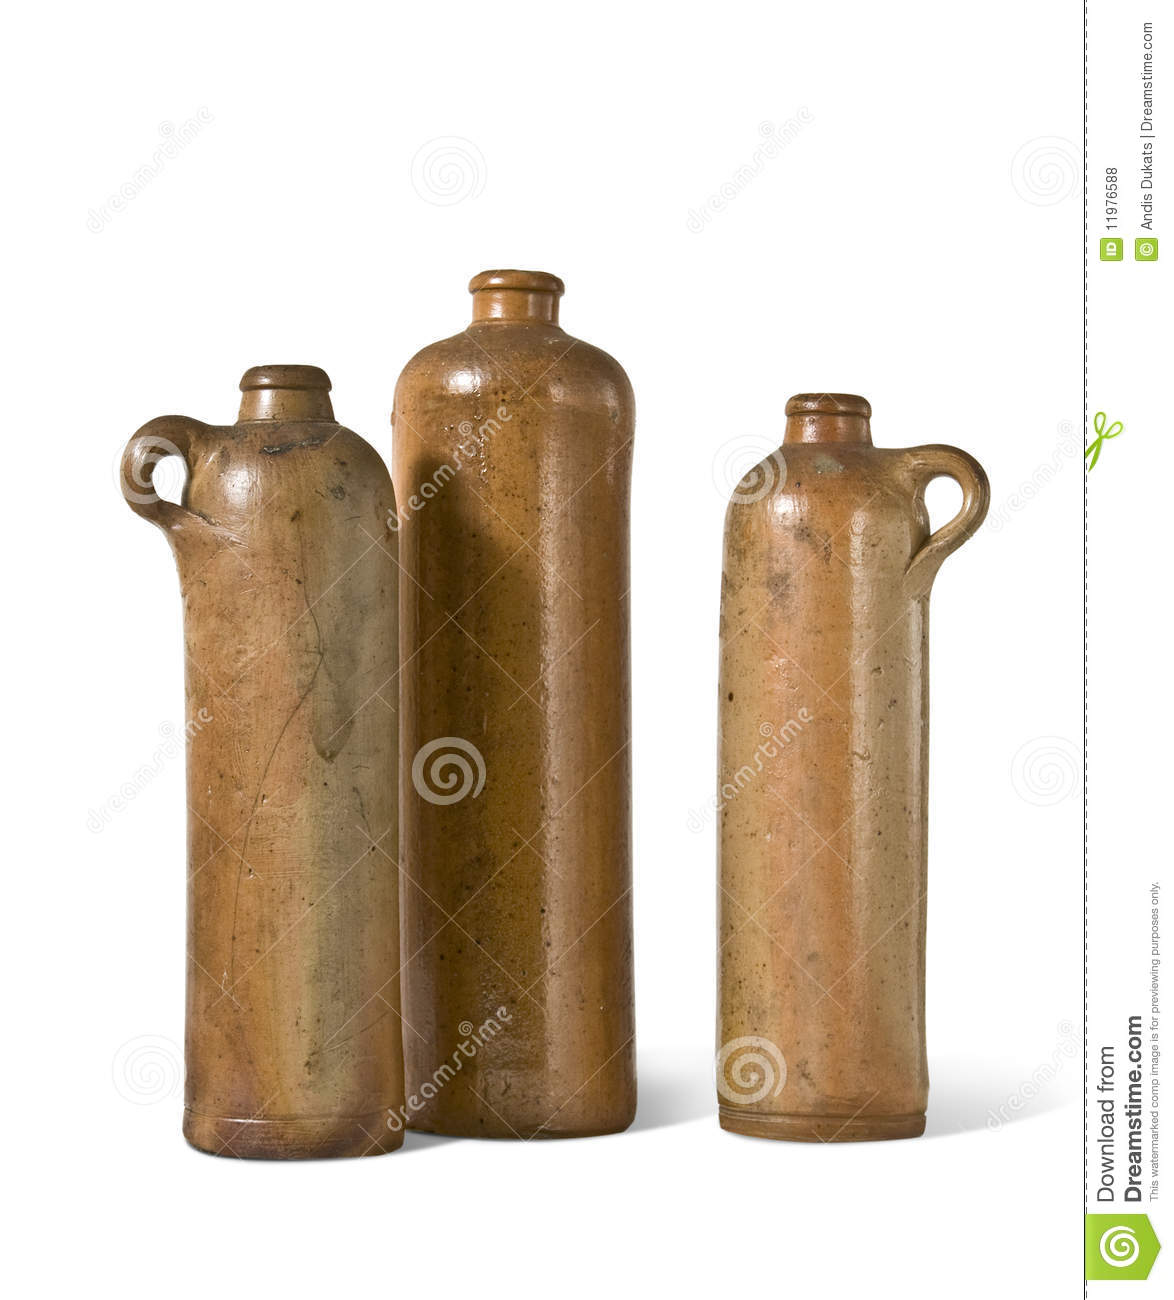 Old clay bottles